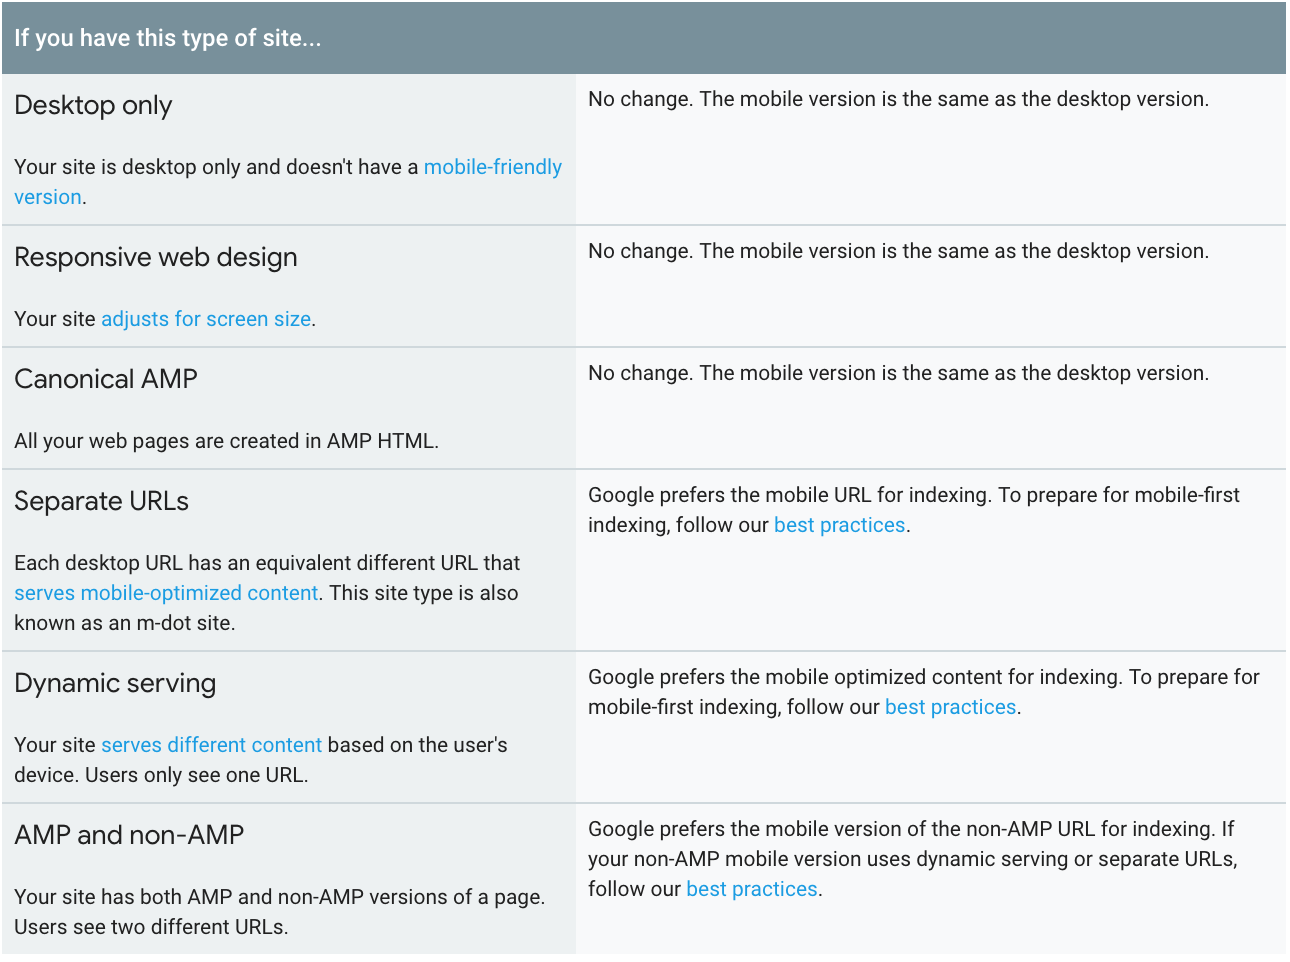 Changes depending on type of website, indication by Google